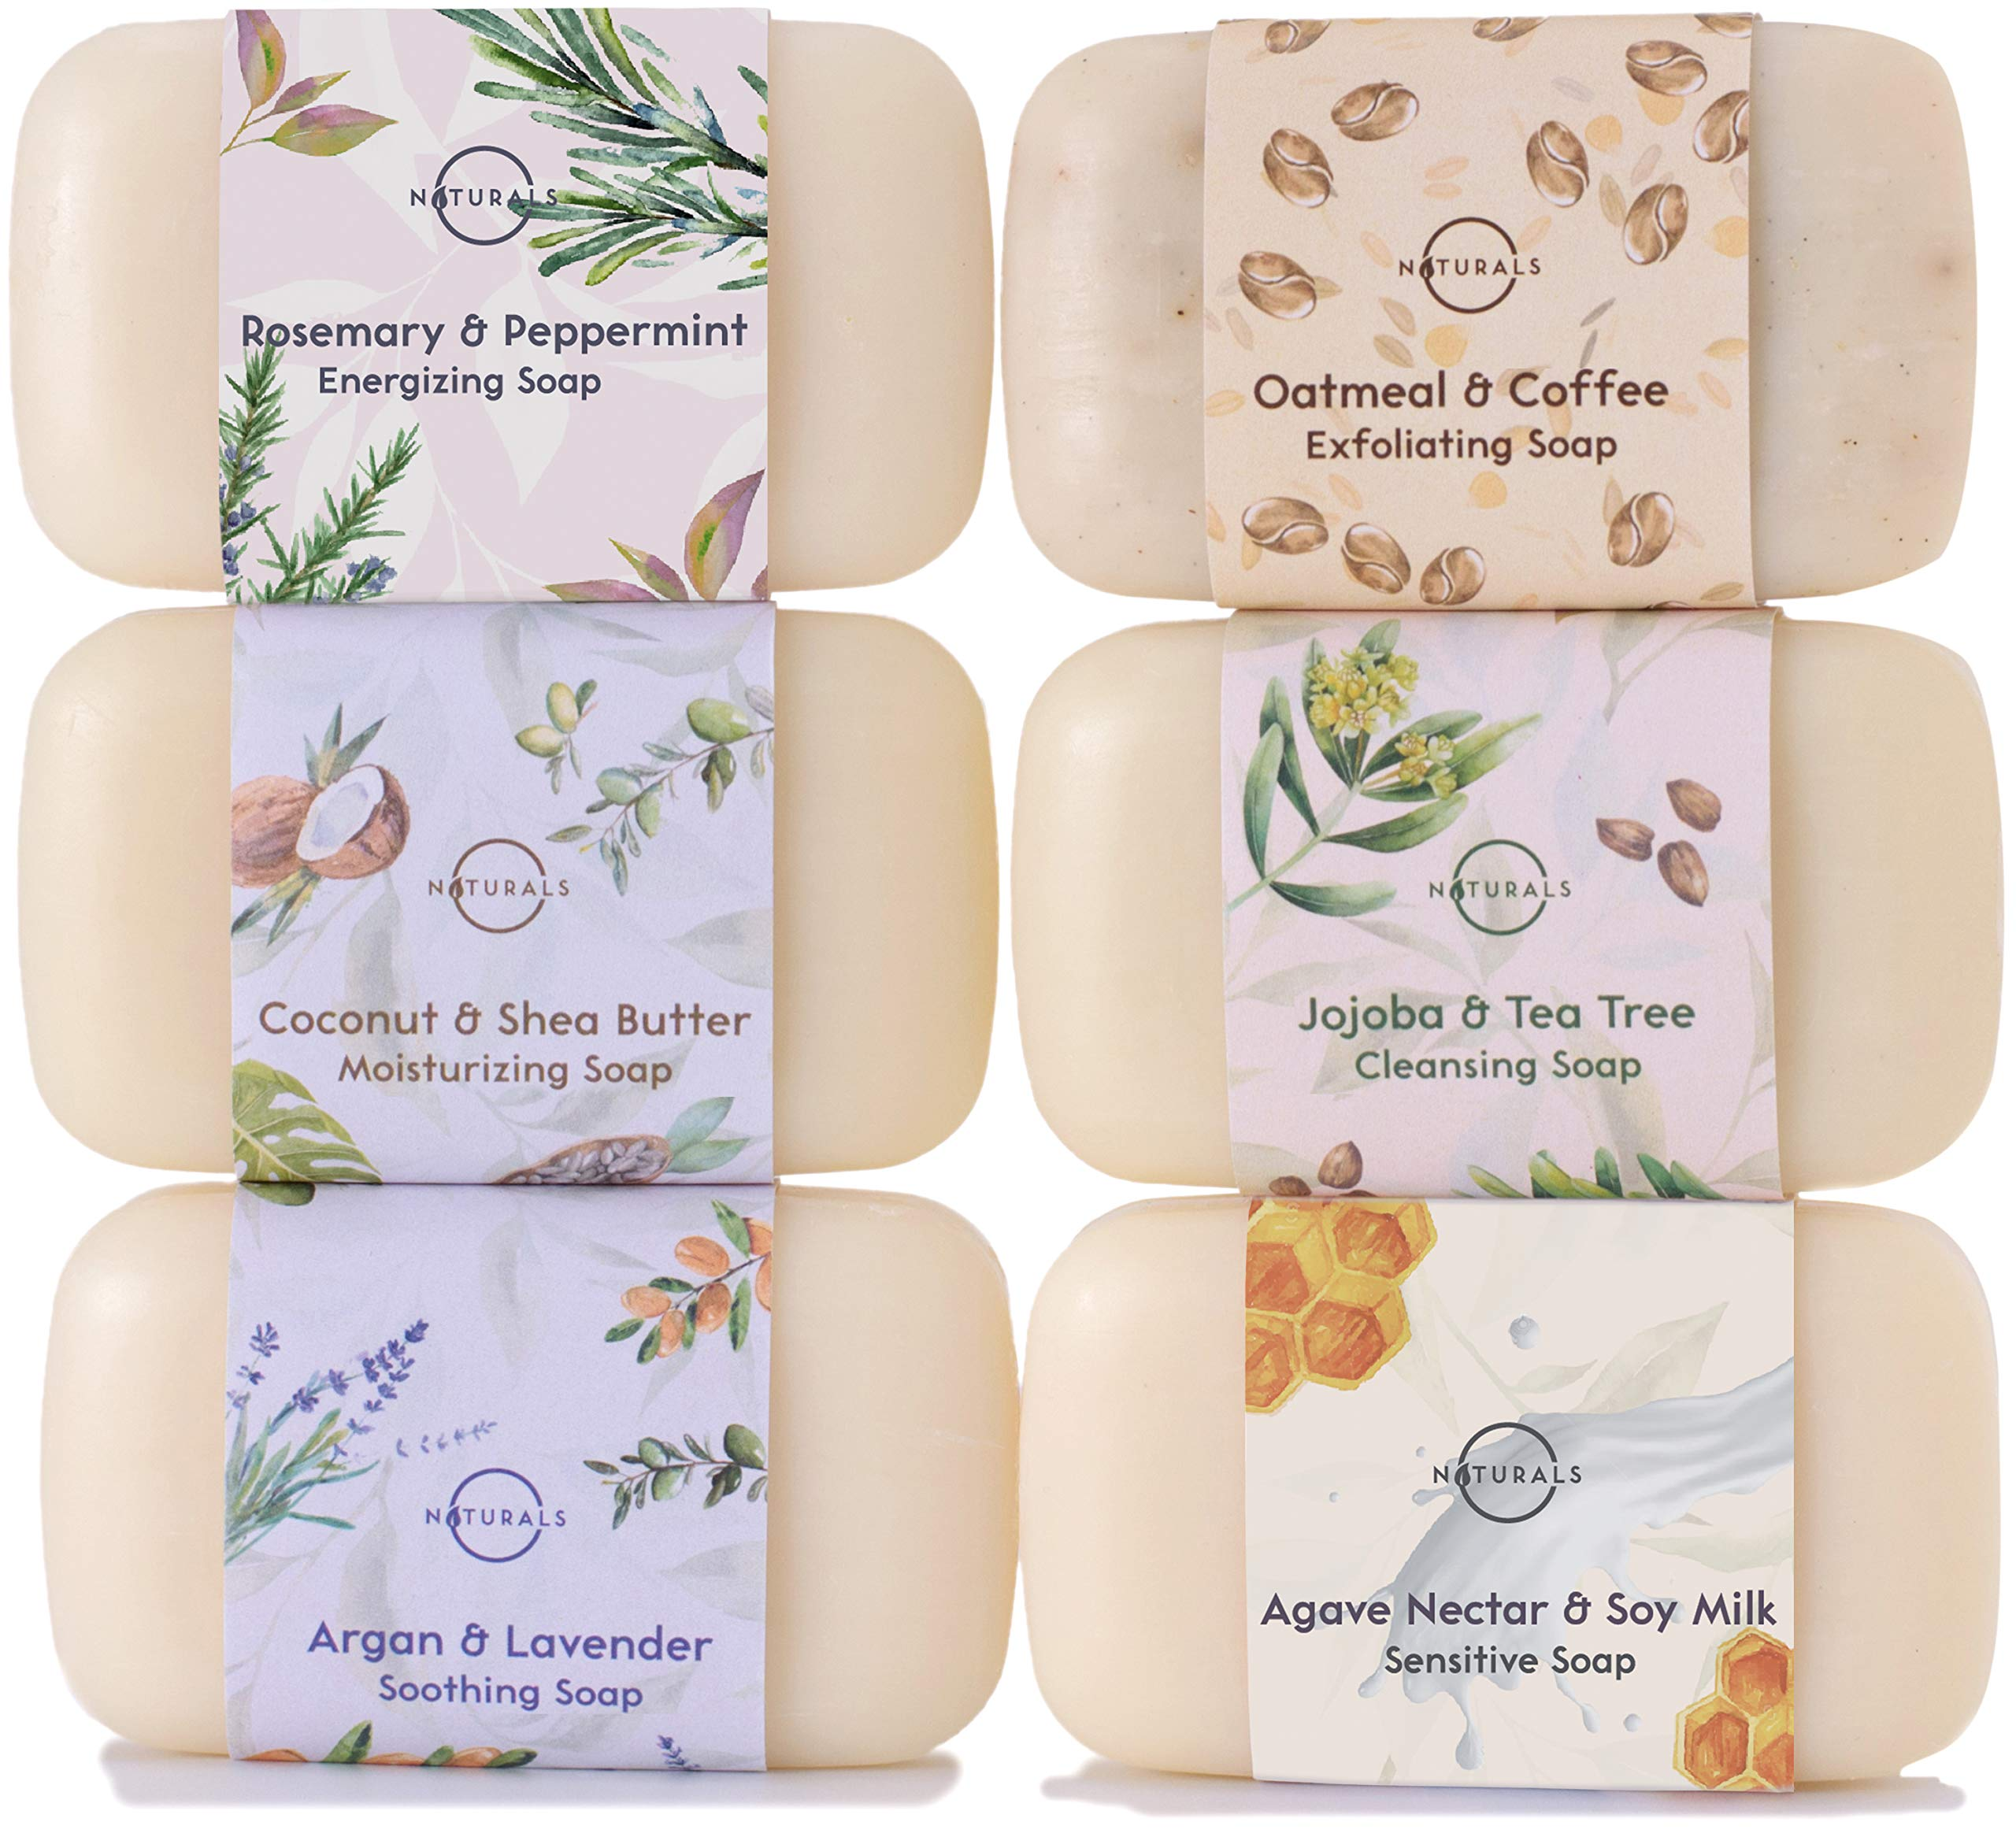 O Naturals 6 Piece Moisturizing Body Wash Soap Bar Collection. 100% Natural Made w/Organic Ingredients & Therapeutic Essential Oils. Face & Hands. Vegan Triple Milled. Gift Set. For Women & Men 4 Oz by O Naturals